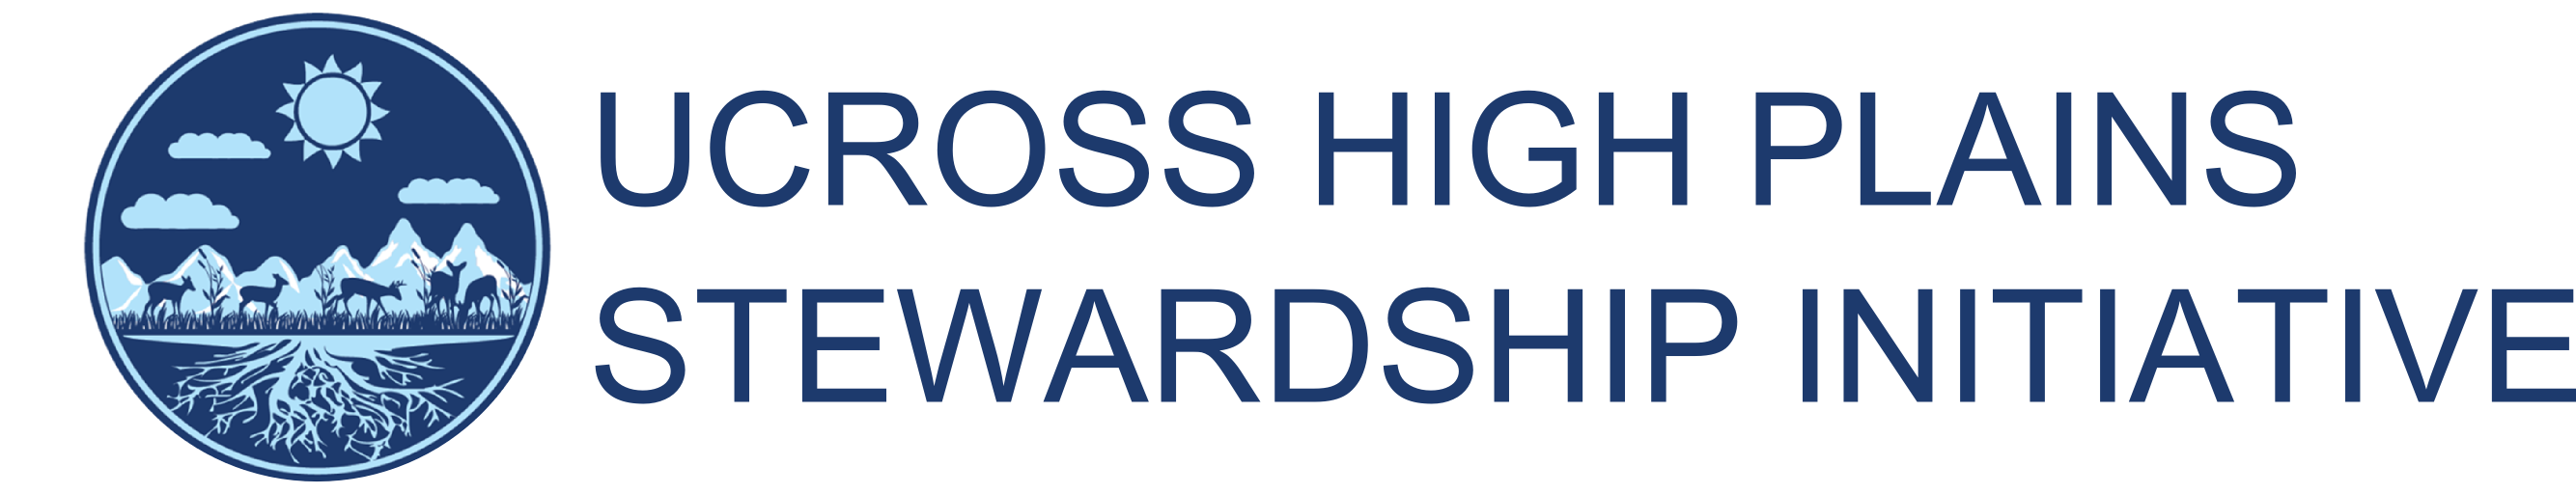 Ucross High Plains Stewardship Initiative